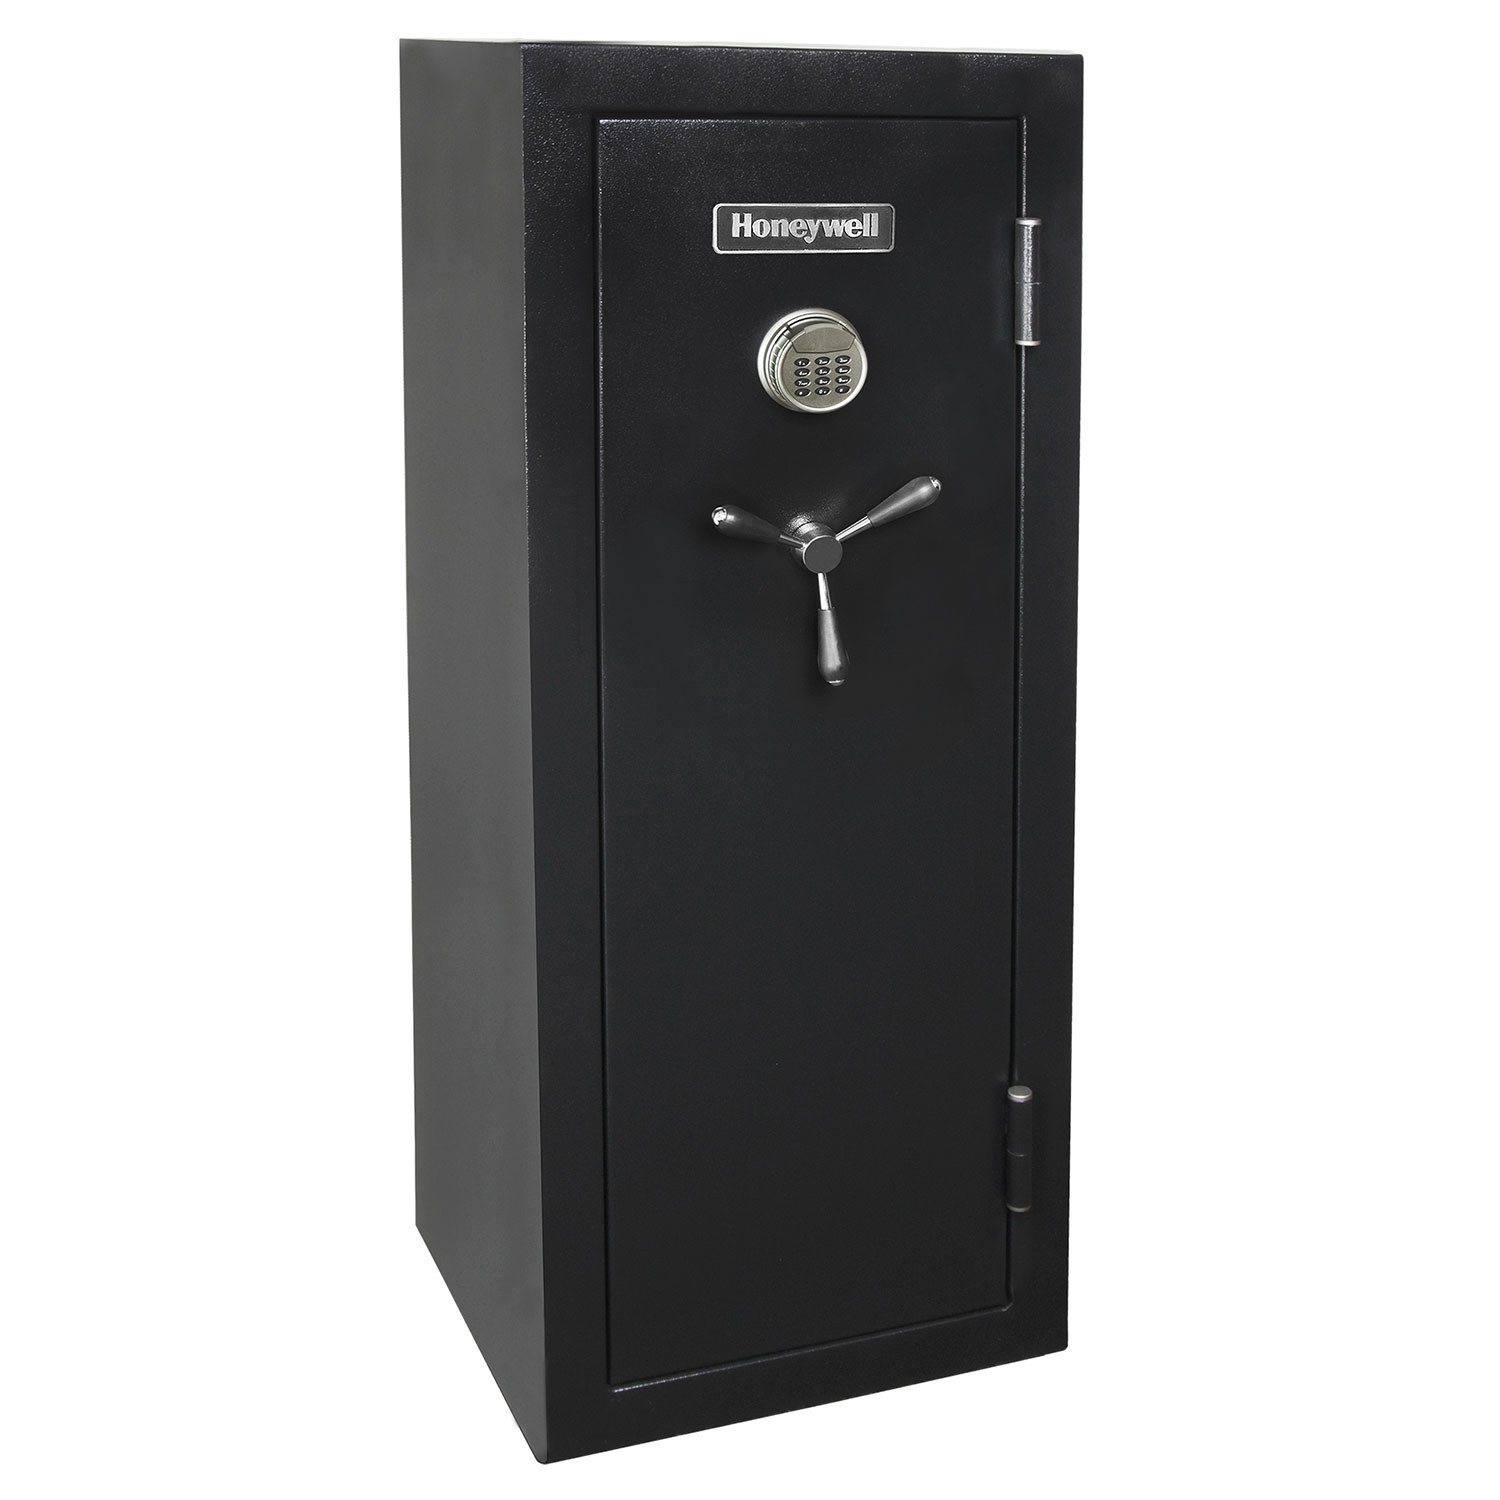 Honeywell 3330D Fire Resistant 5 Drawer Jewelry Safe (9.93 cu ft) - Digital Lock